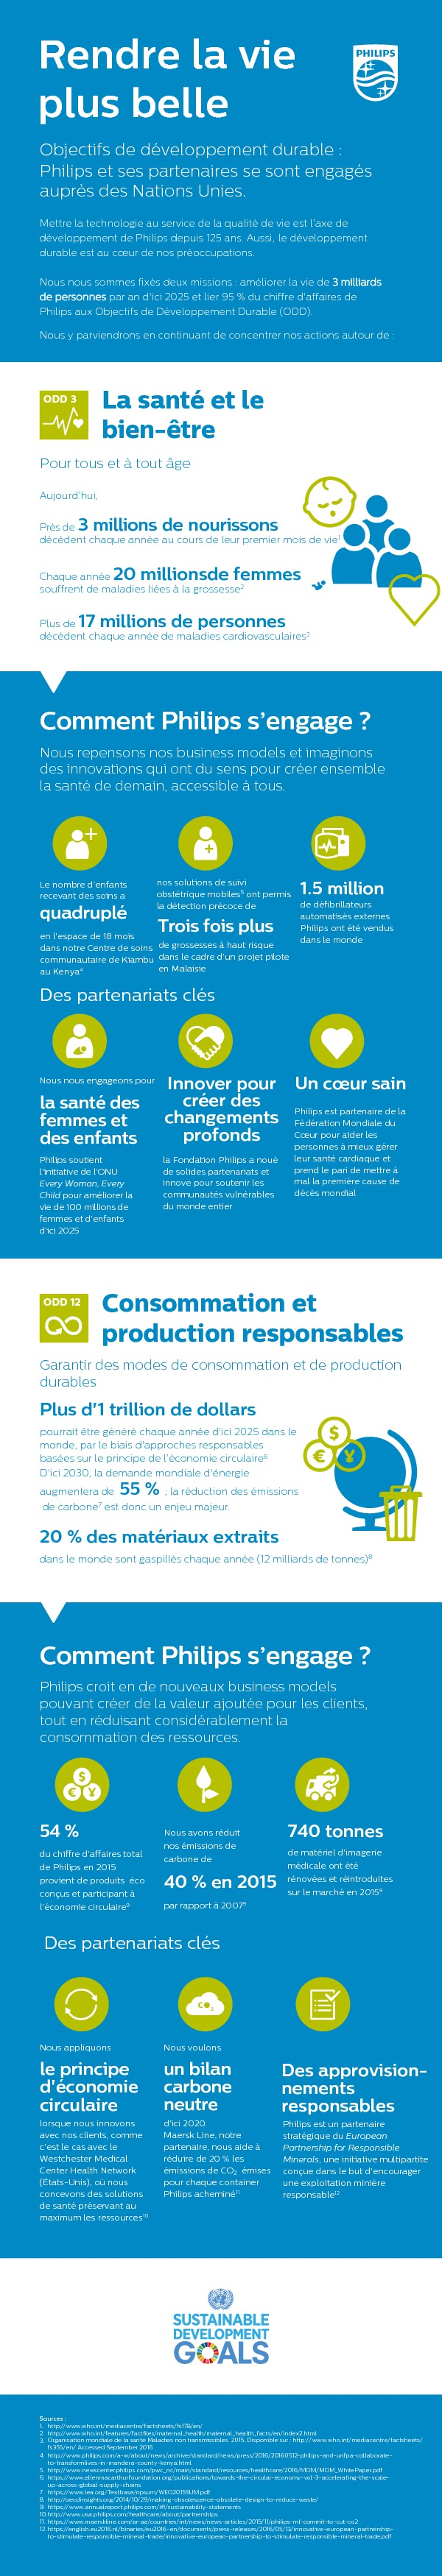 https%3A%2F%2Fwww.philips.fr%2Fc-dam%2Fcorporate%2Fabout-philips%2Fsustainability%2Finfographics%2FPhilips_SDG_Infographic_2016_FINAL_FR.download.pdf